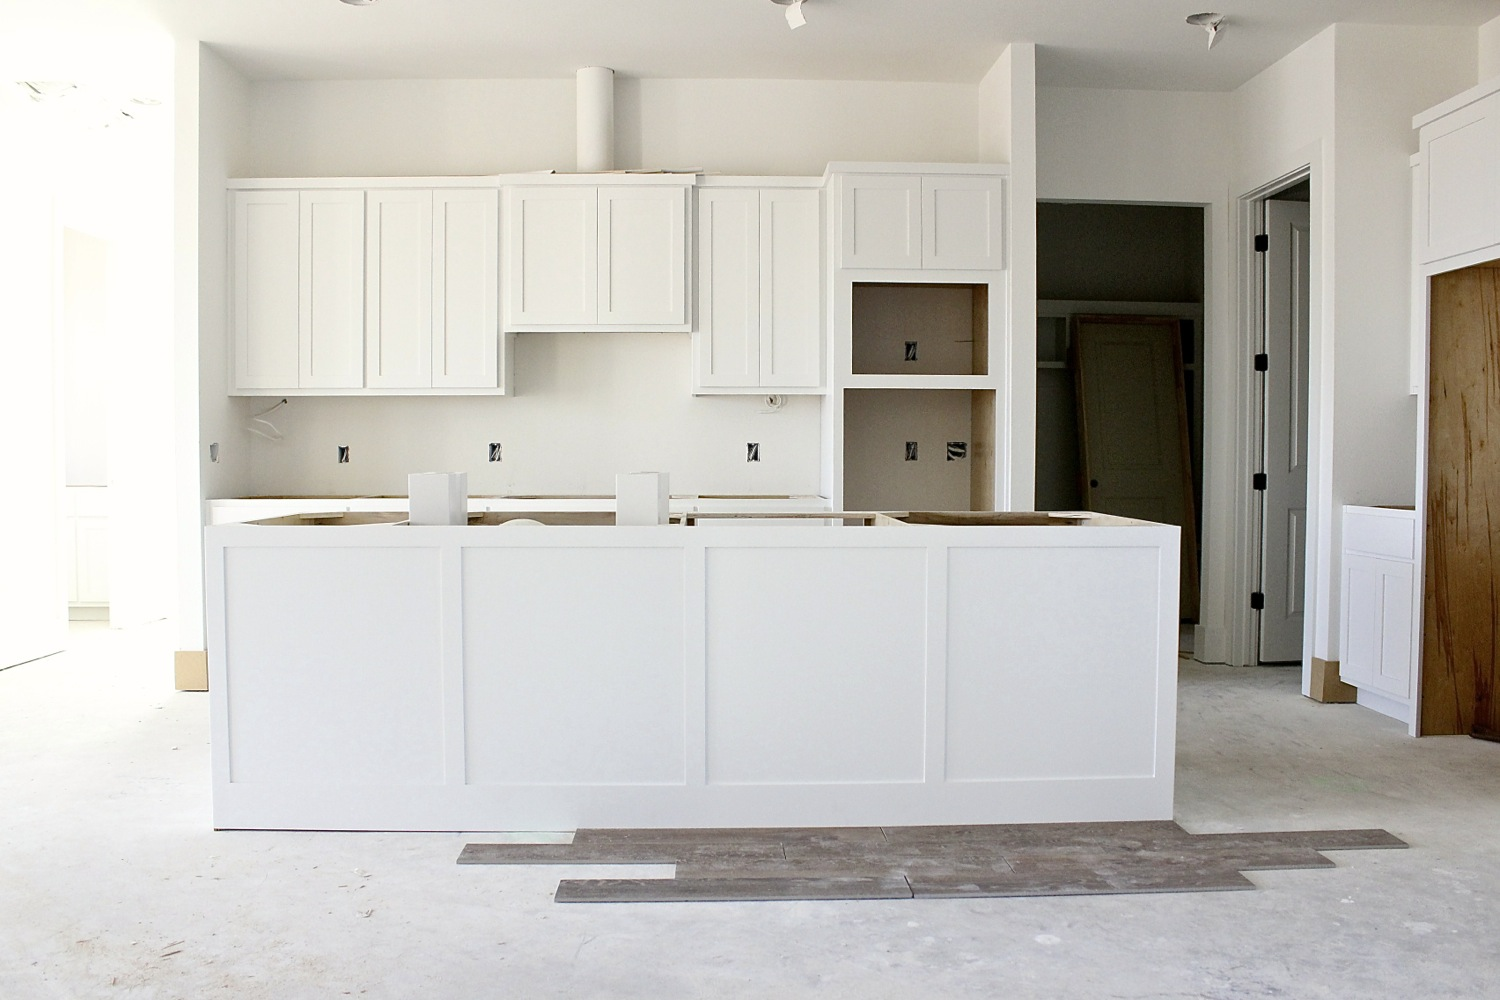 Building a new home tile flooring countertops and color made the cabinets had just gone in and i love them i knew i wanted white cabinets from the very get gobut i also knew that i wanted white stone countertops dailygadgetfo Images